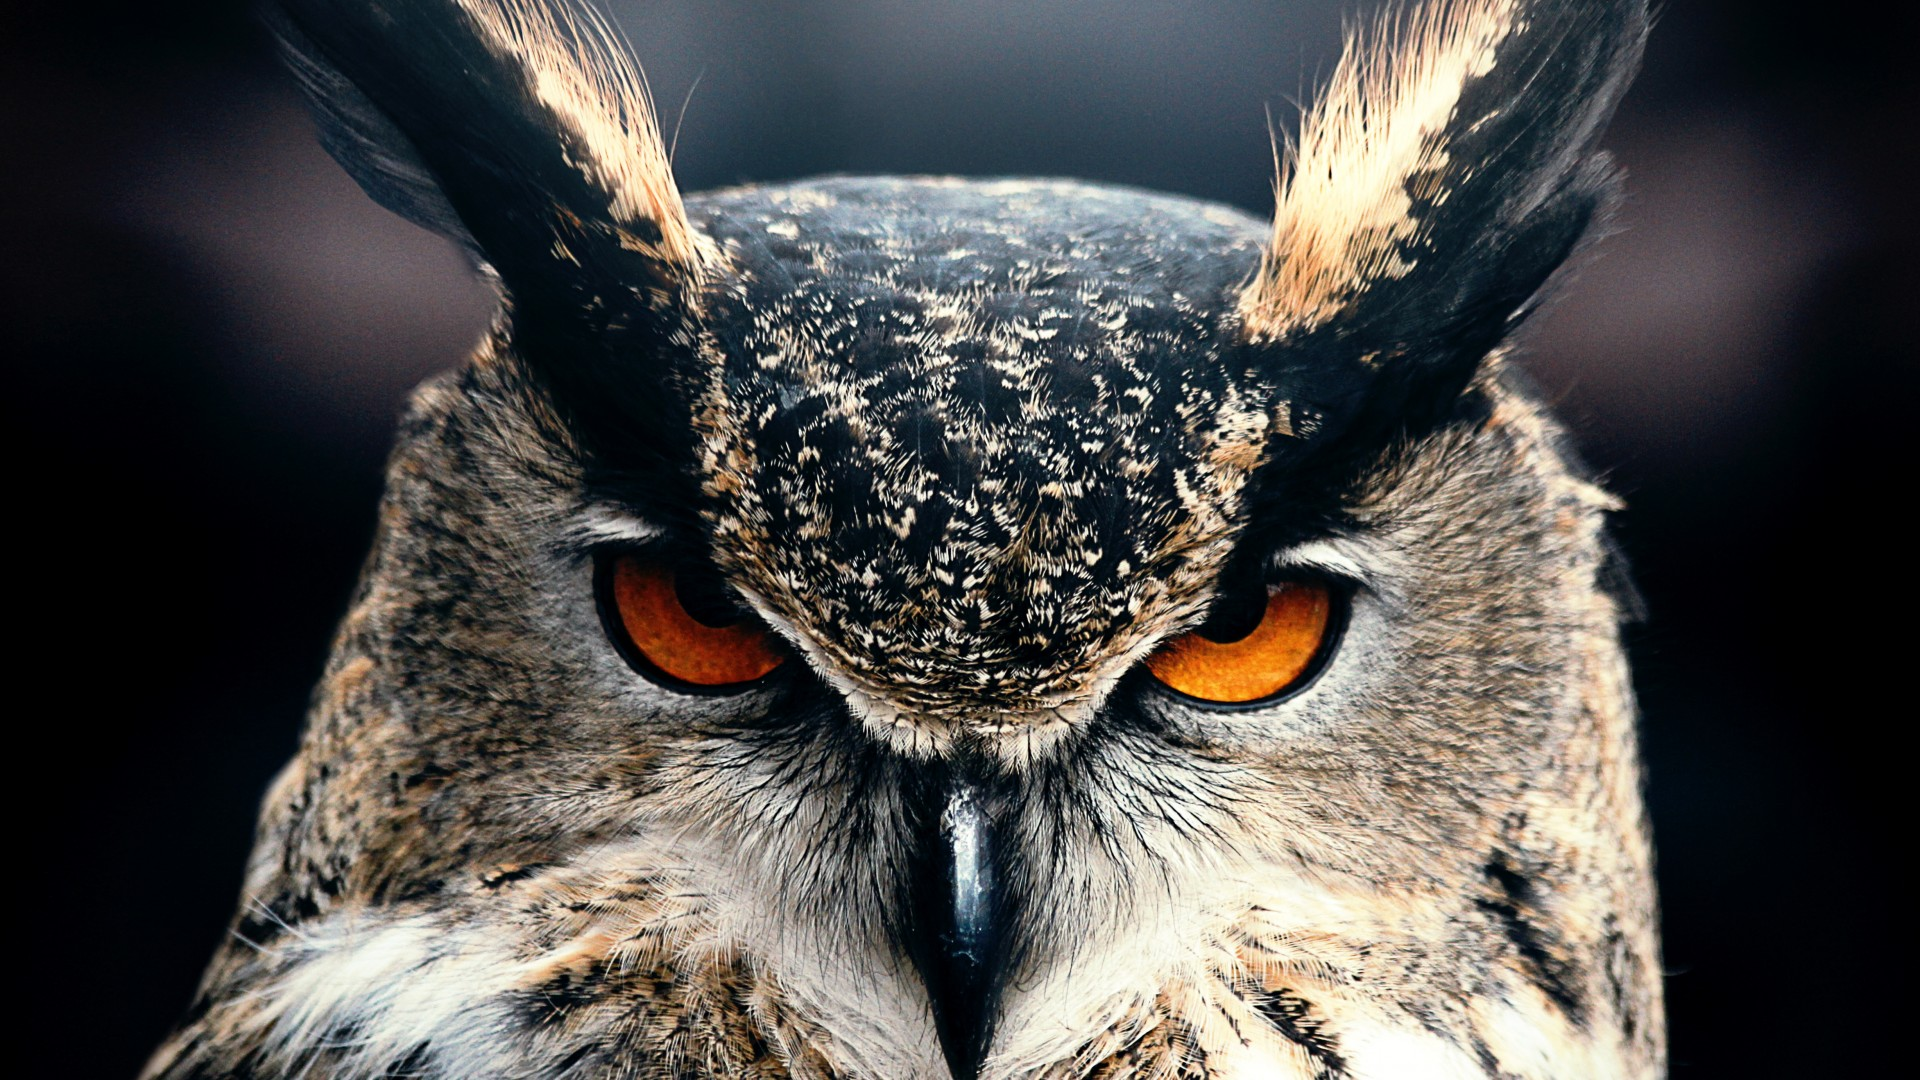 Cute Owl Wallpaper For Mac Wallpaper Owl 4k Hd Wallpaper Eyes Wild Nature Gray